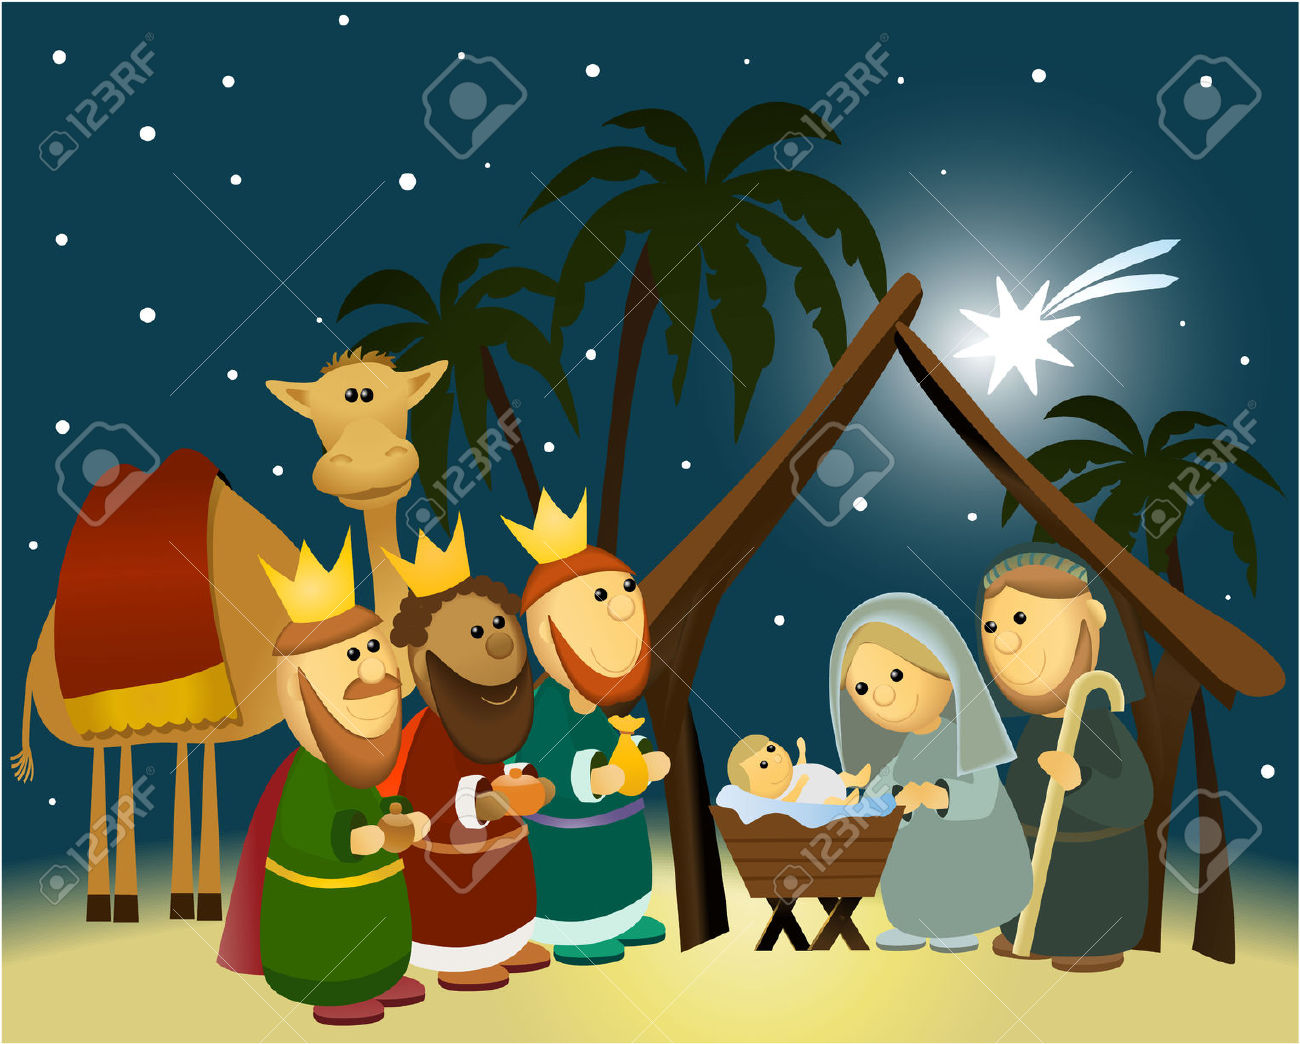 Cartoon Nativity Scene With Holy Family Royalty Free Cliparts.